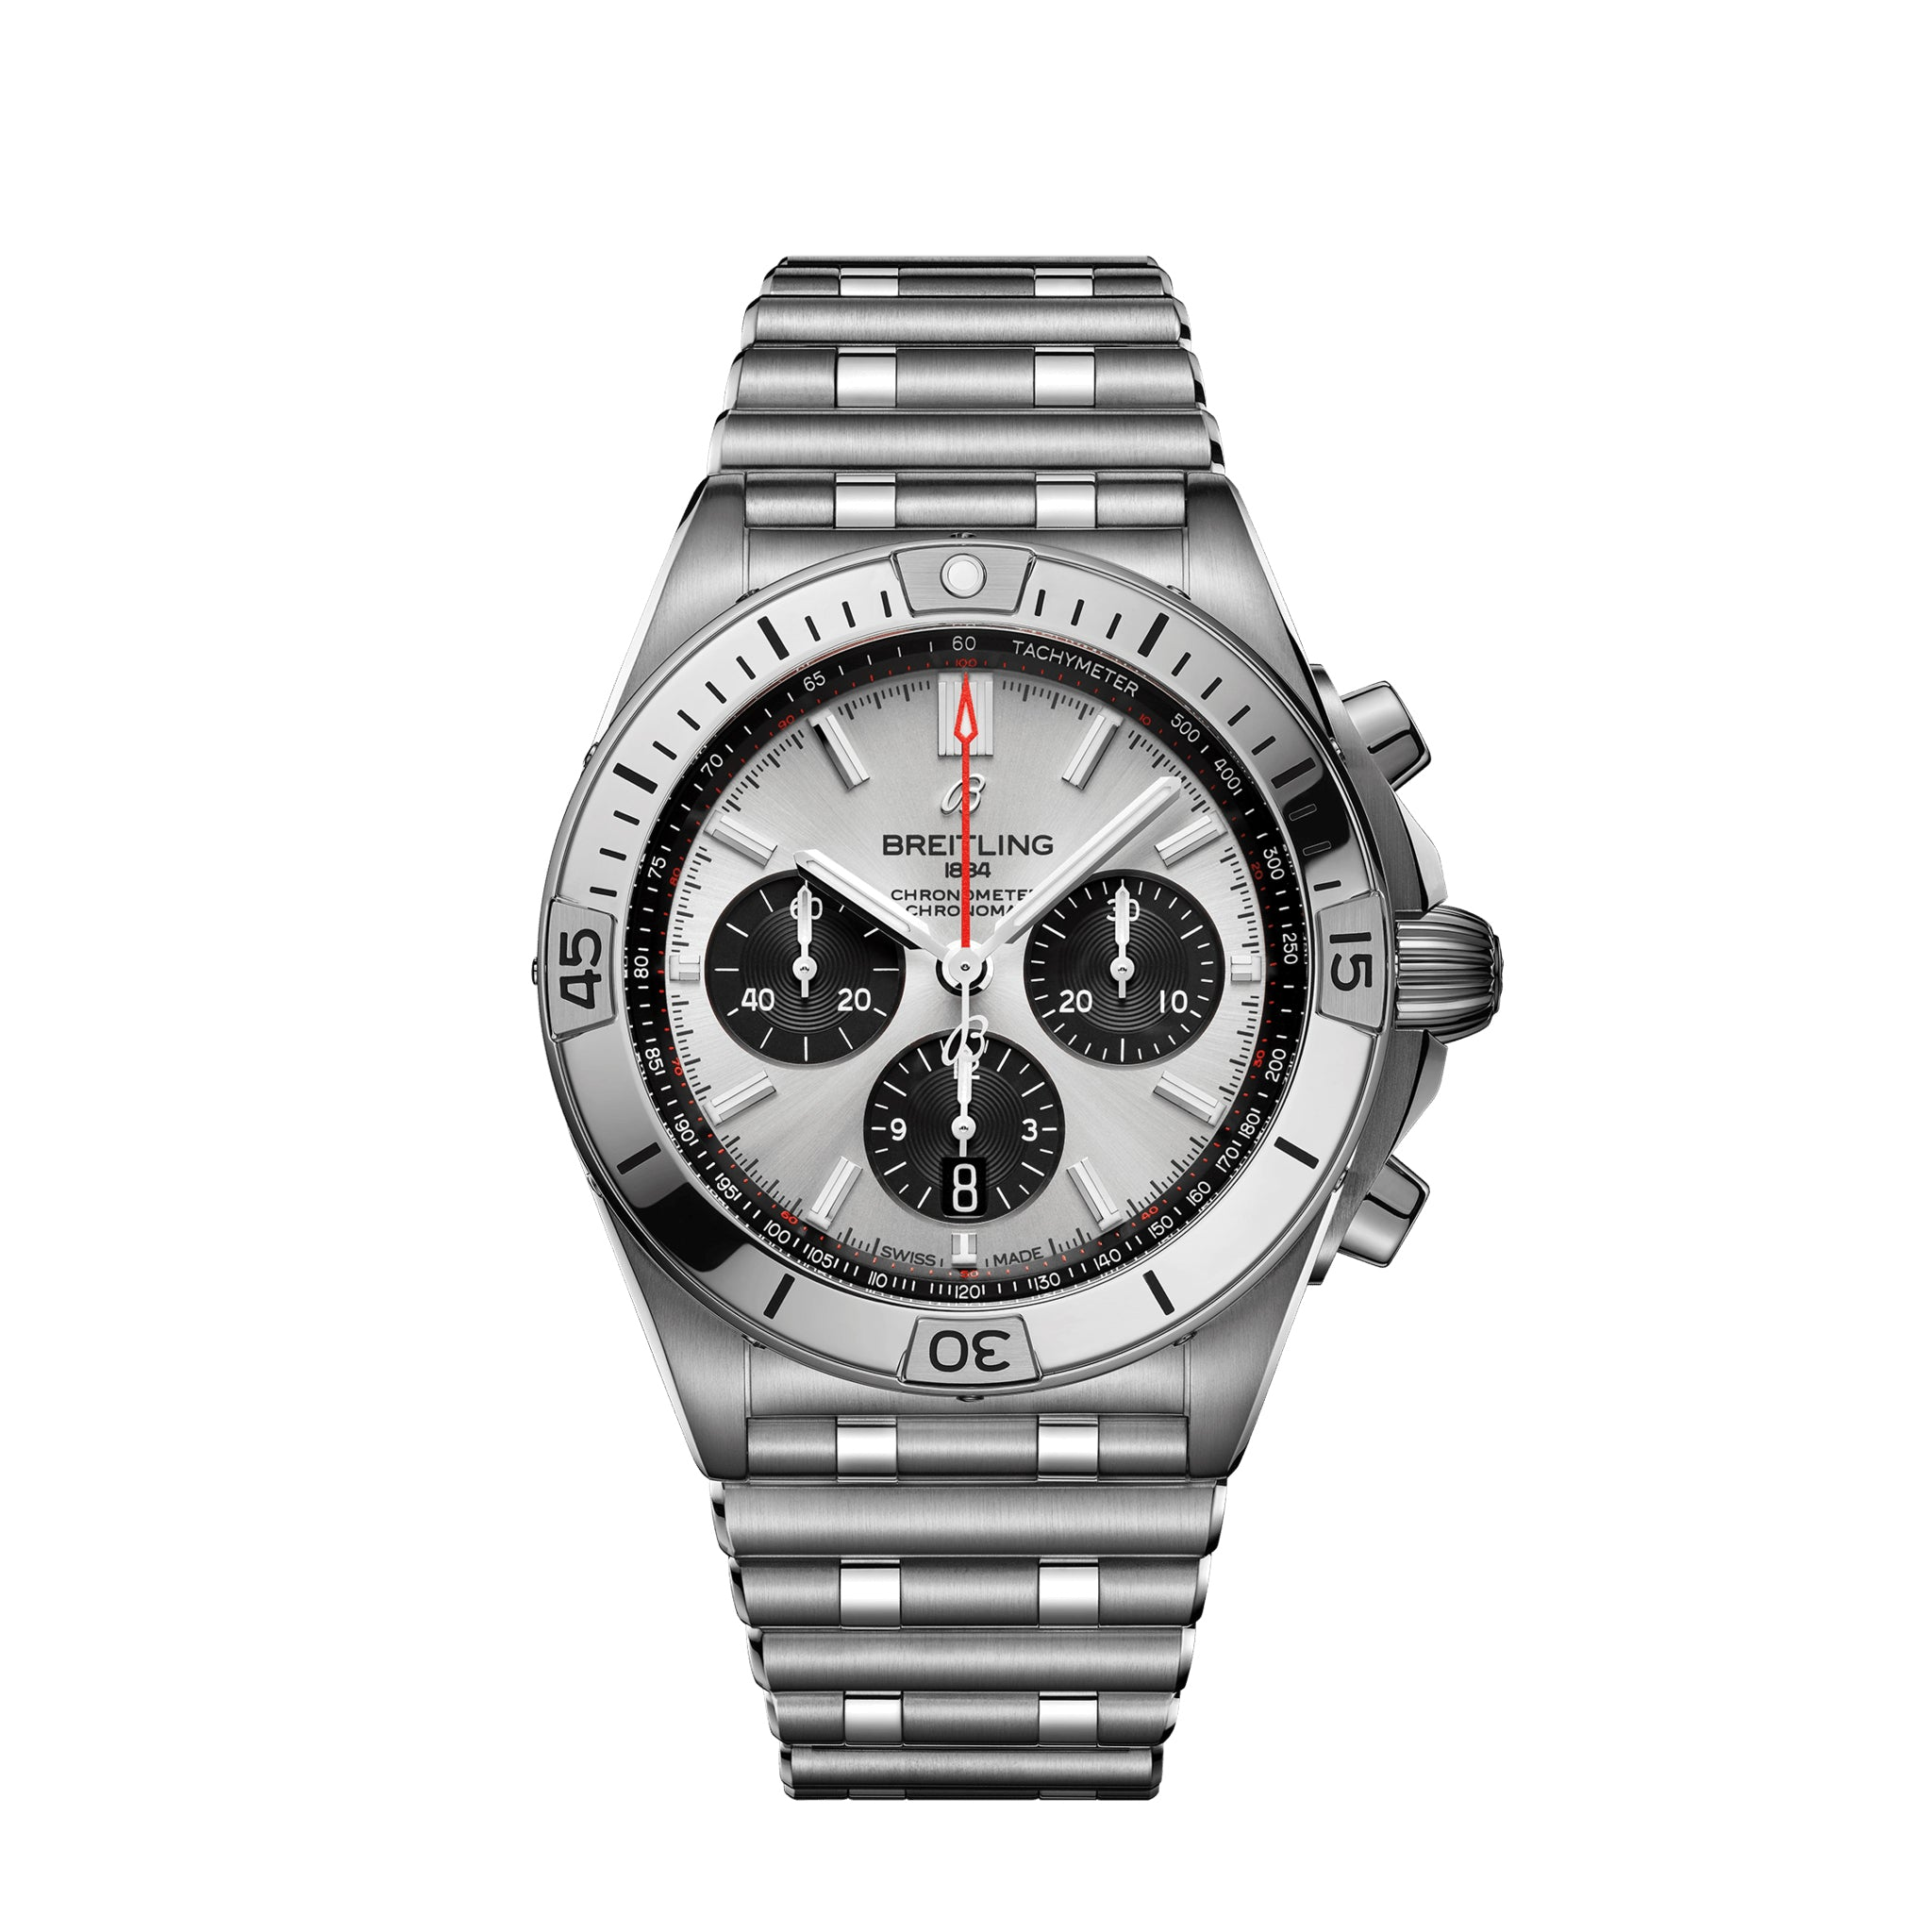 Breitling Chronomat B01 42 Steel with Silver Dial - Available for Pre-Order